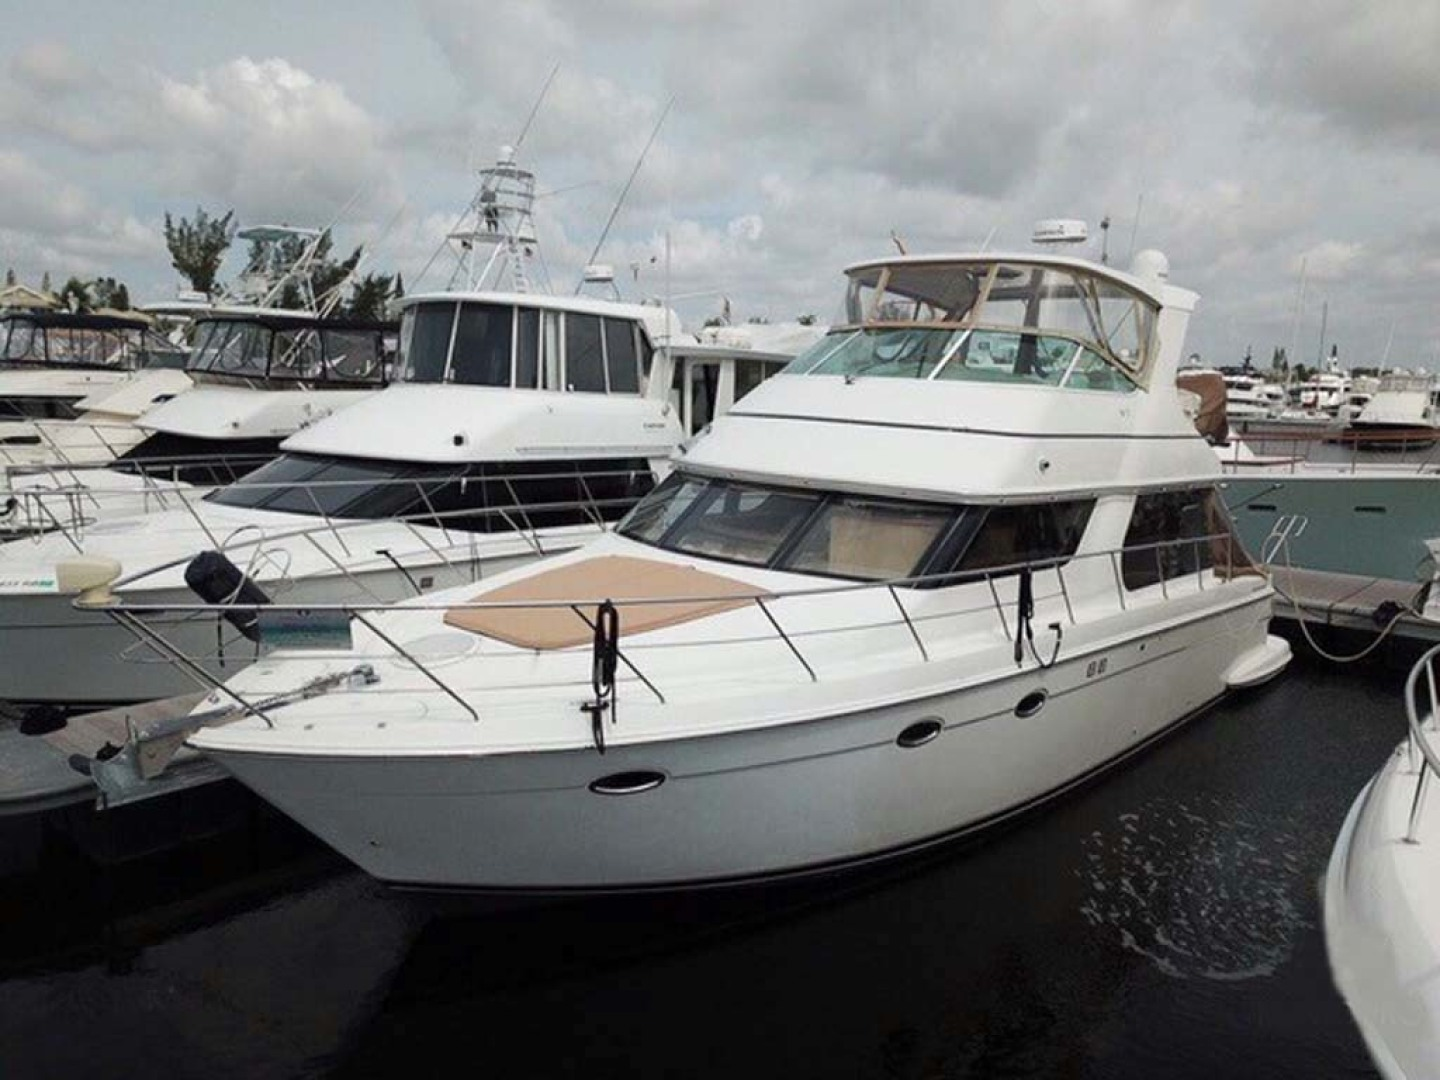 Carver-Voyager 2005-Sawbones Fort Lauderdale-Florida-United States-Profile-1134986 | Thumbnail